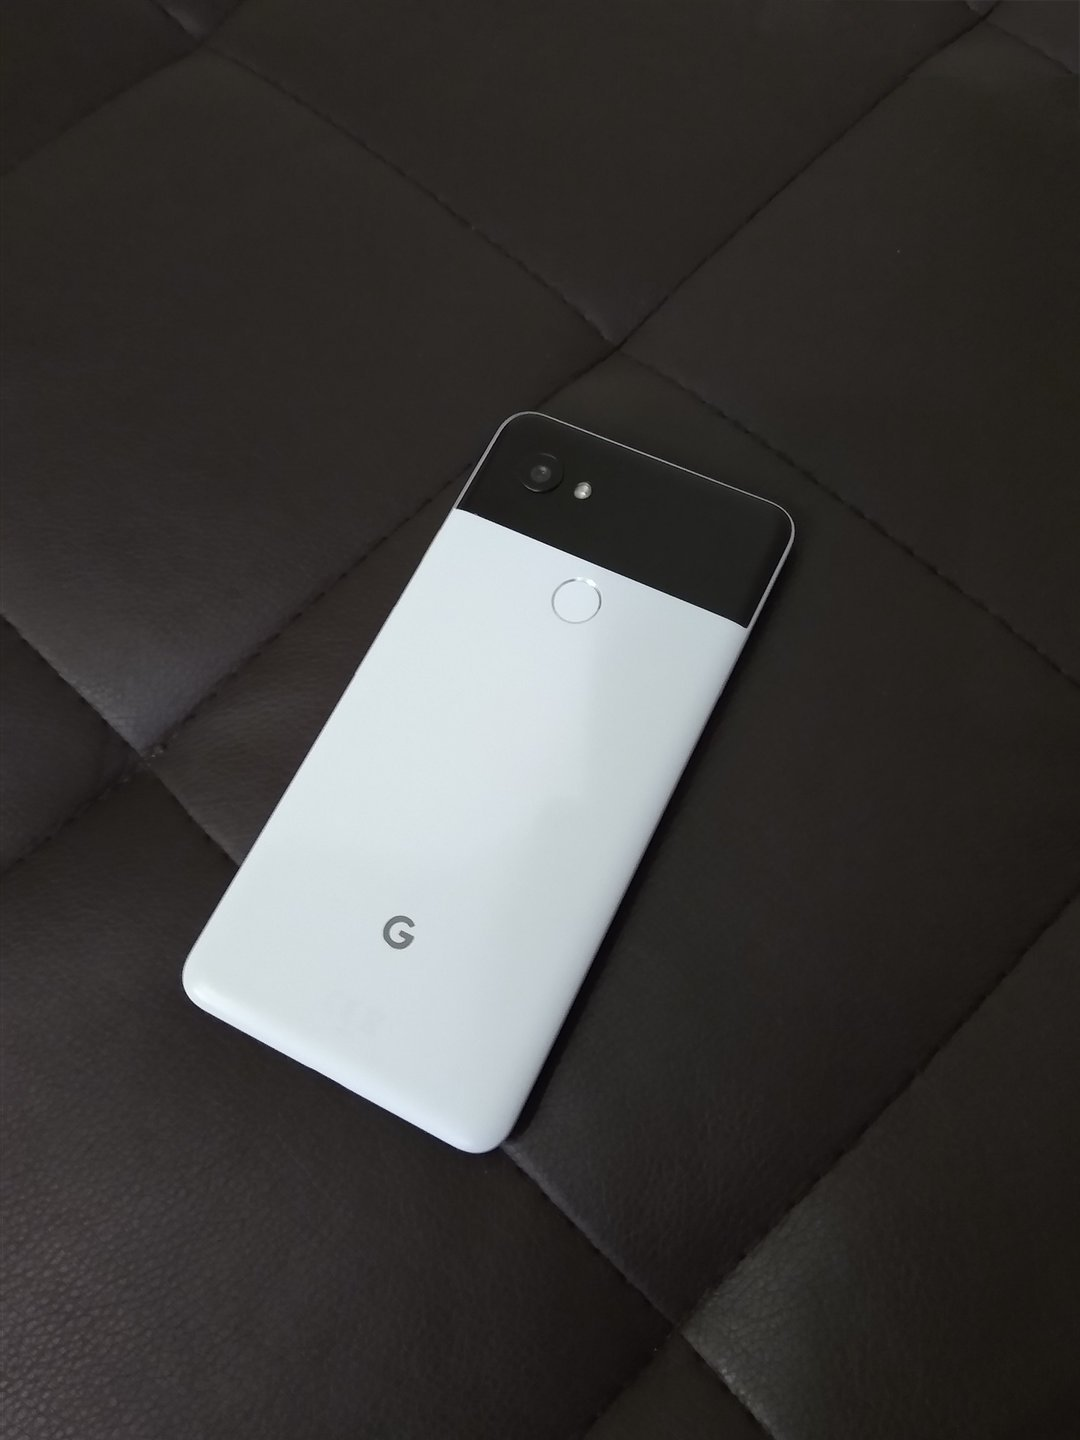 Google Pixel 2 XL in 2019 - Why?